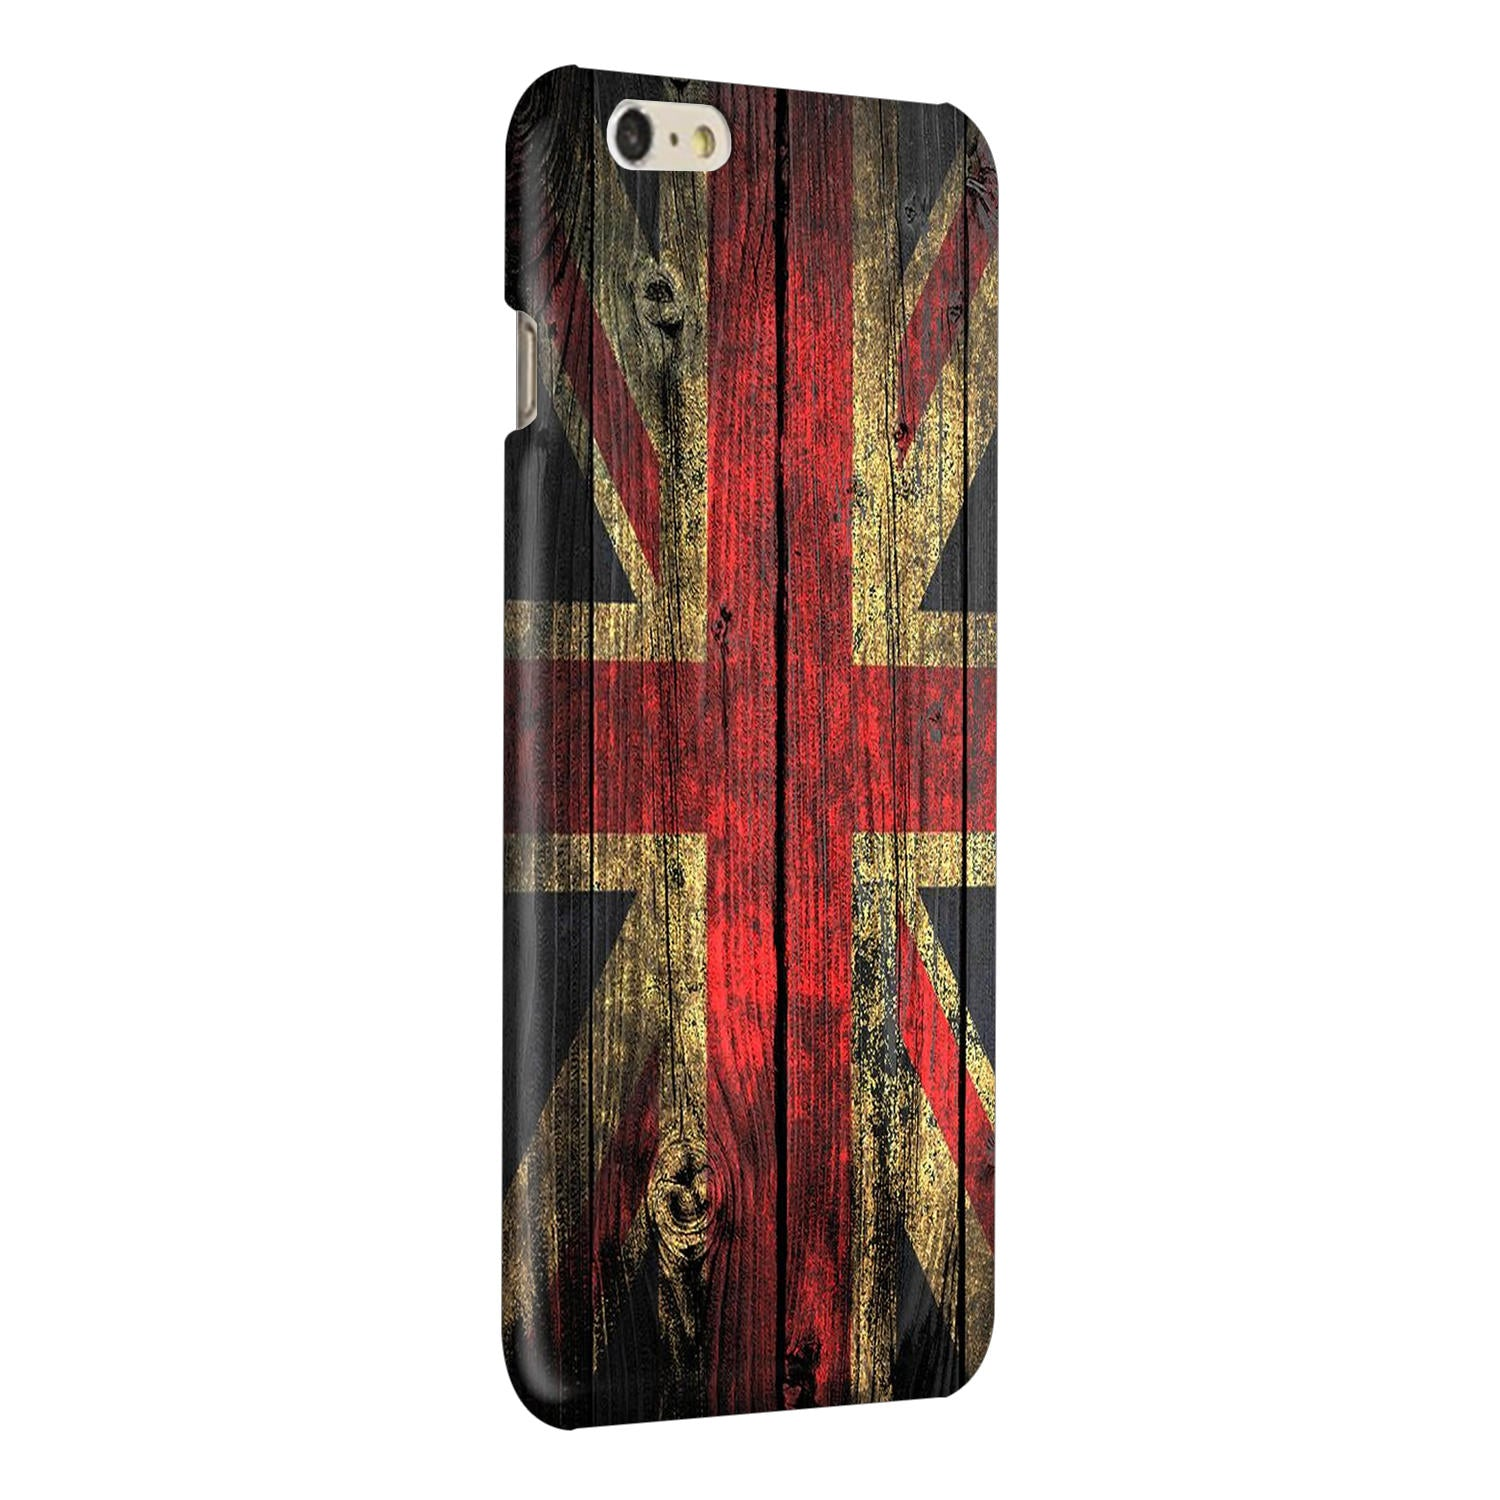 Union Jack iPhone 6 Plus Mobile Cover Case - MADANYU